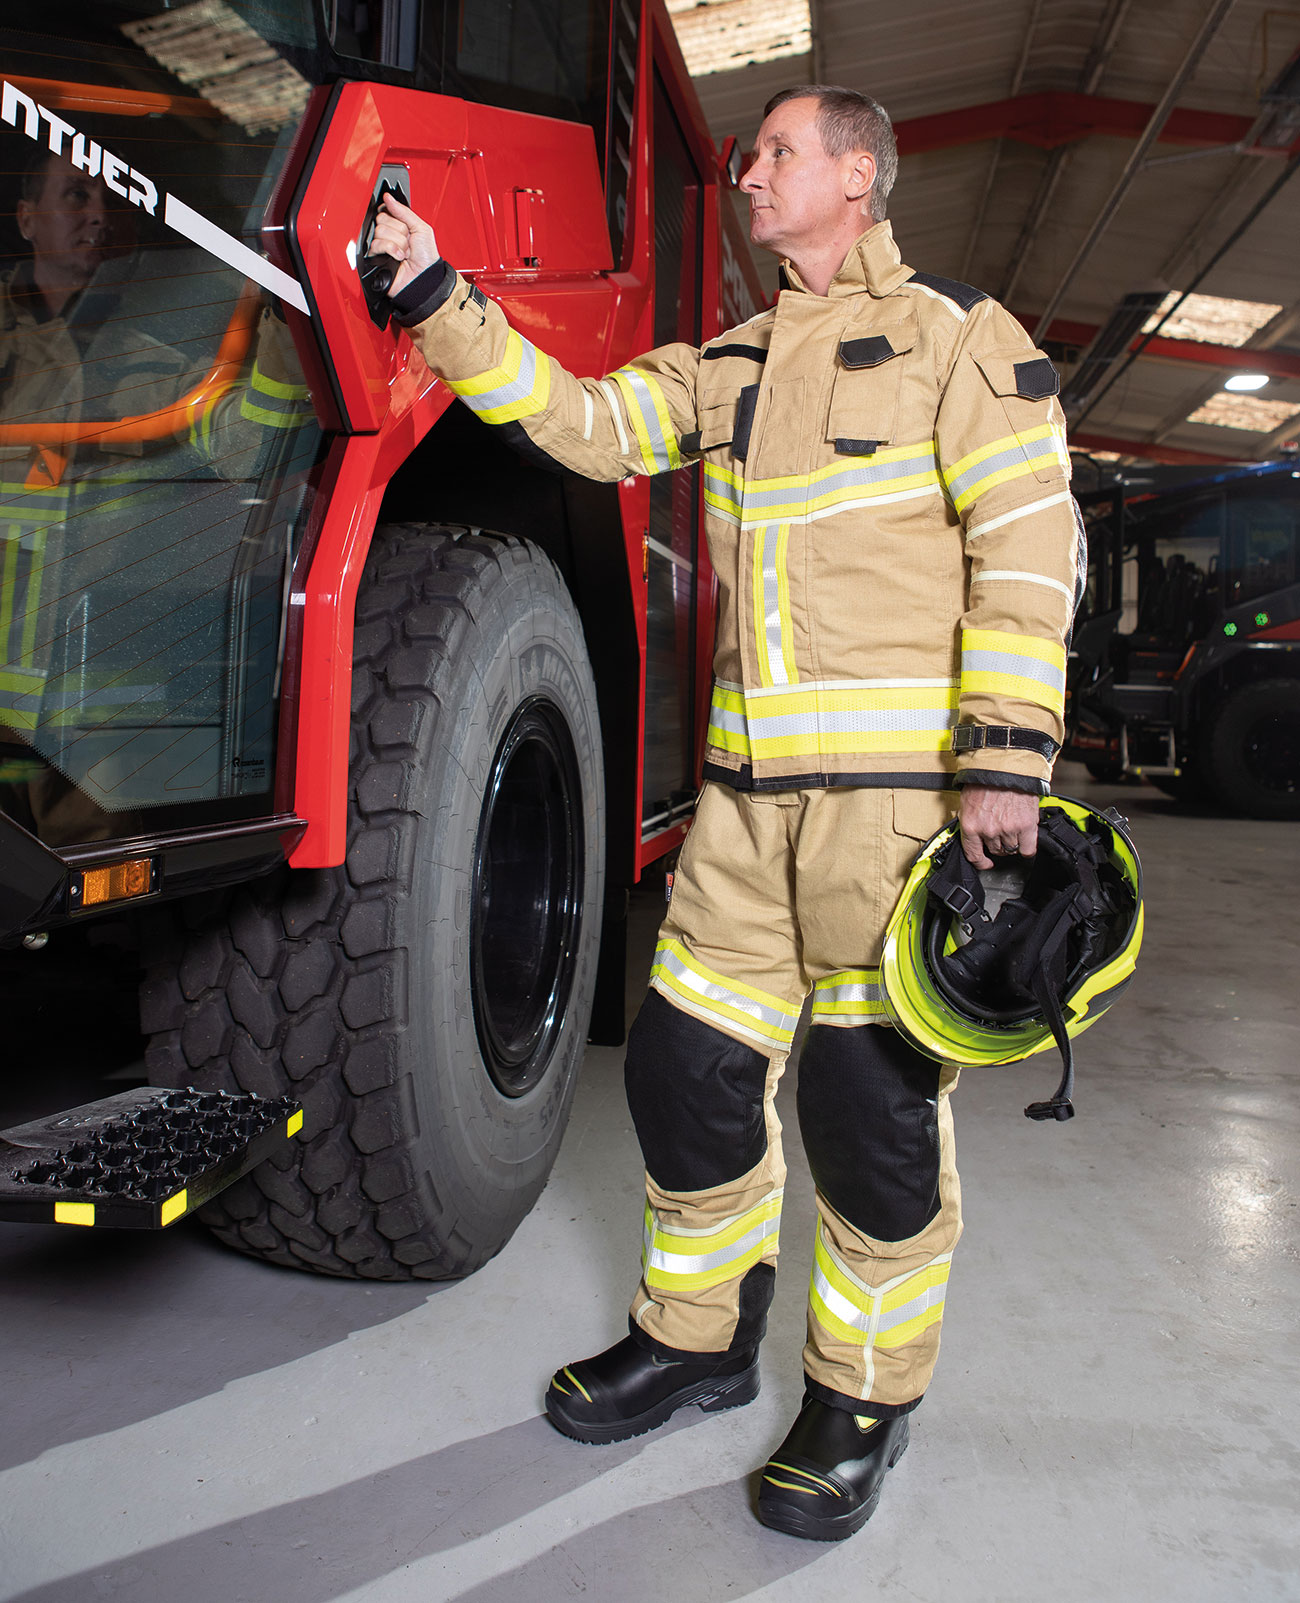 FlamePro has announced the launch of its new Valiant structural fire suit, designed to ensure firefighters no longer have to compromise between comfort and protection.